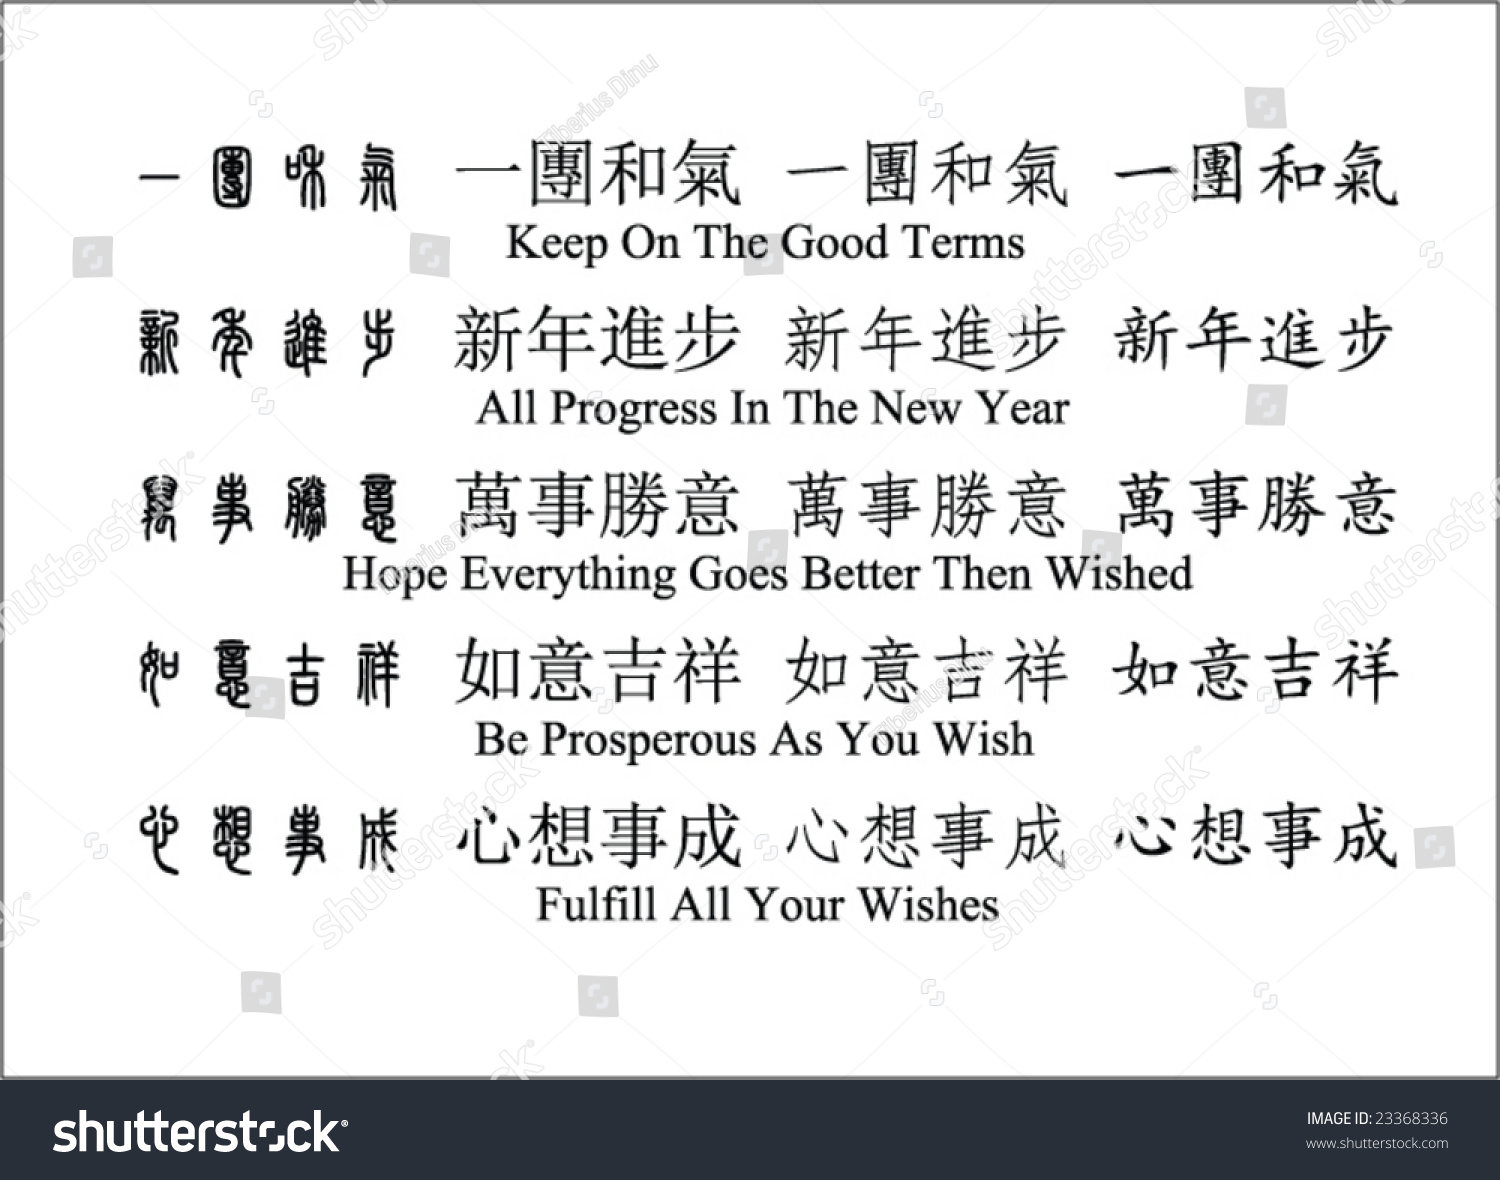 Royalty-free Chinese (New Year) wishes with English… #23368336 Stock ...